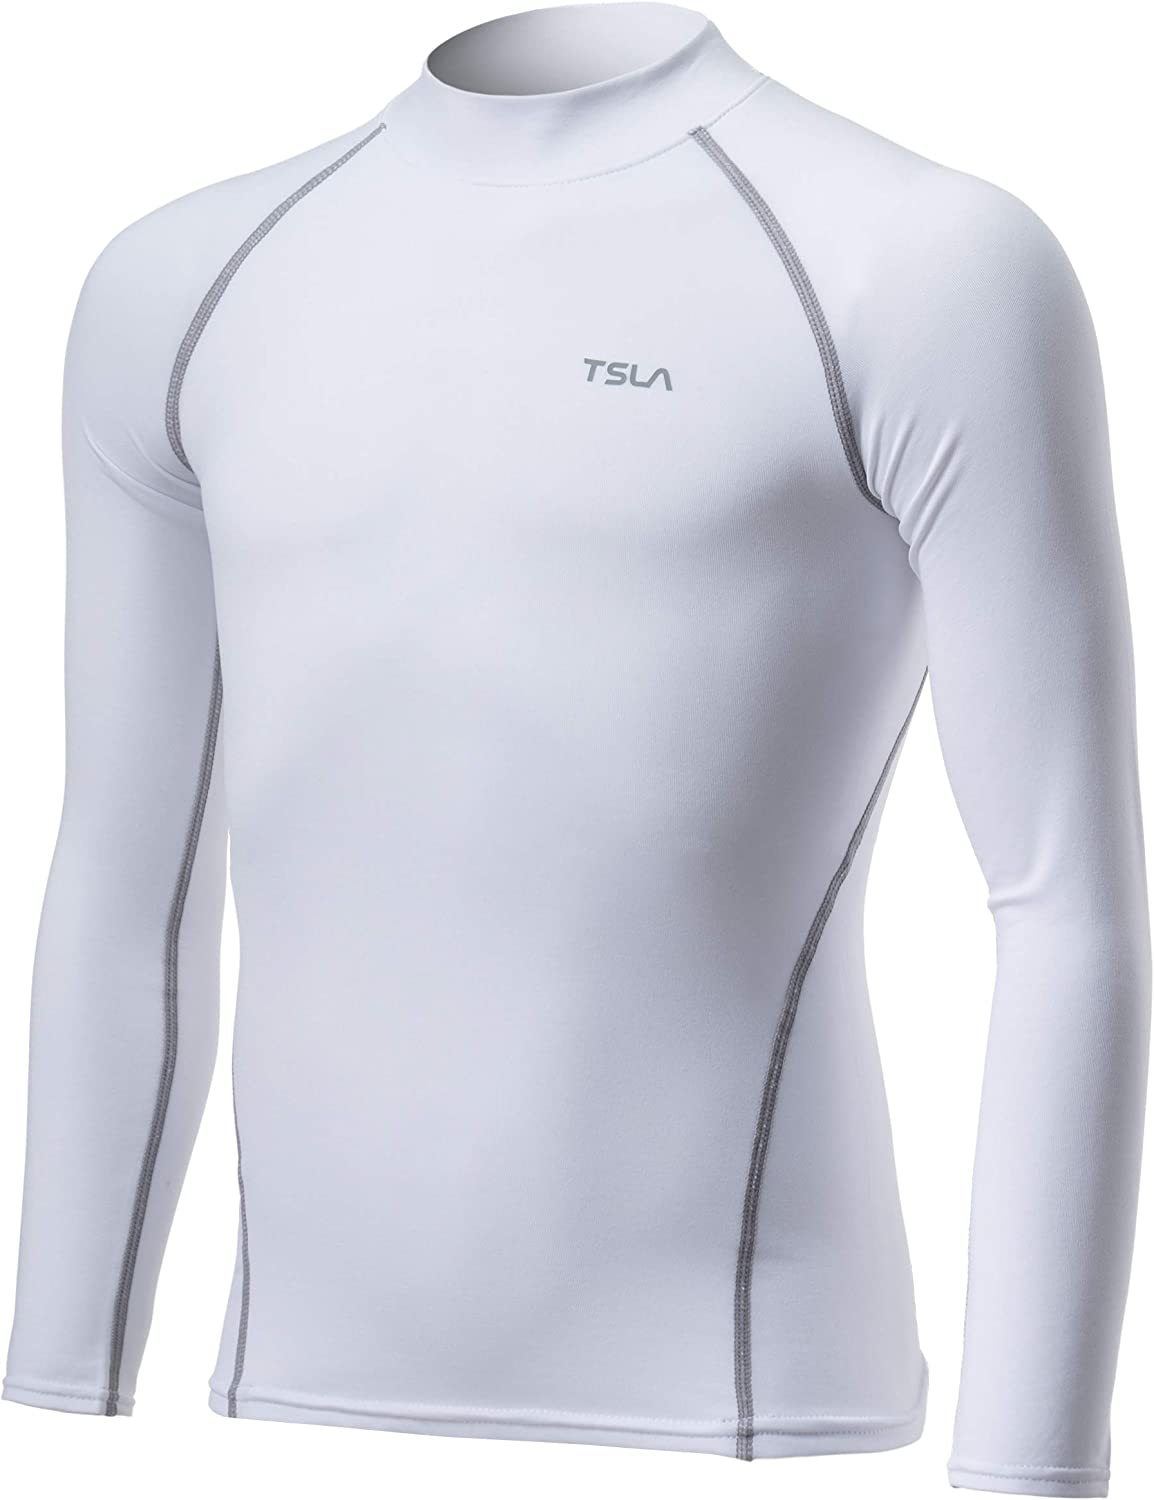 TSLA Kid's & Boy's and Girl's Thermal Long Sleeve Tops, Crew Neck Fleece Lined Compression Base Layer Shirts